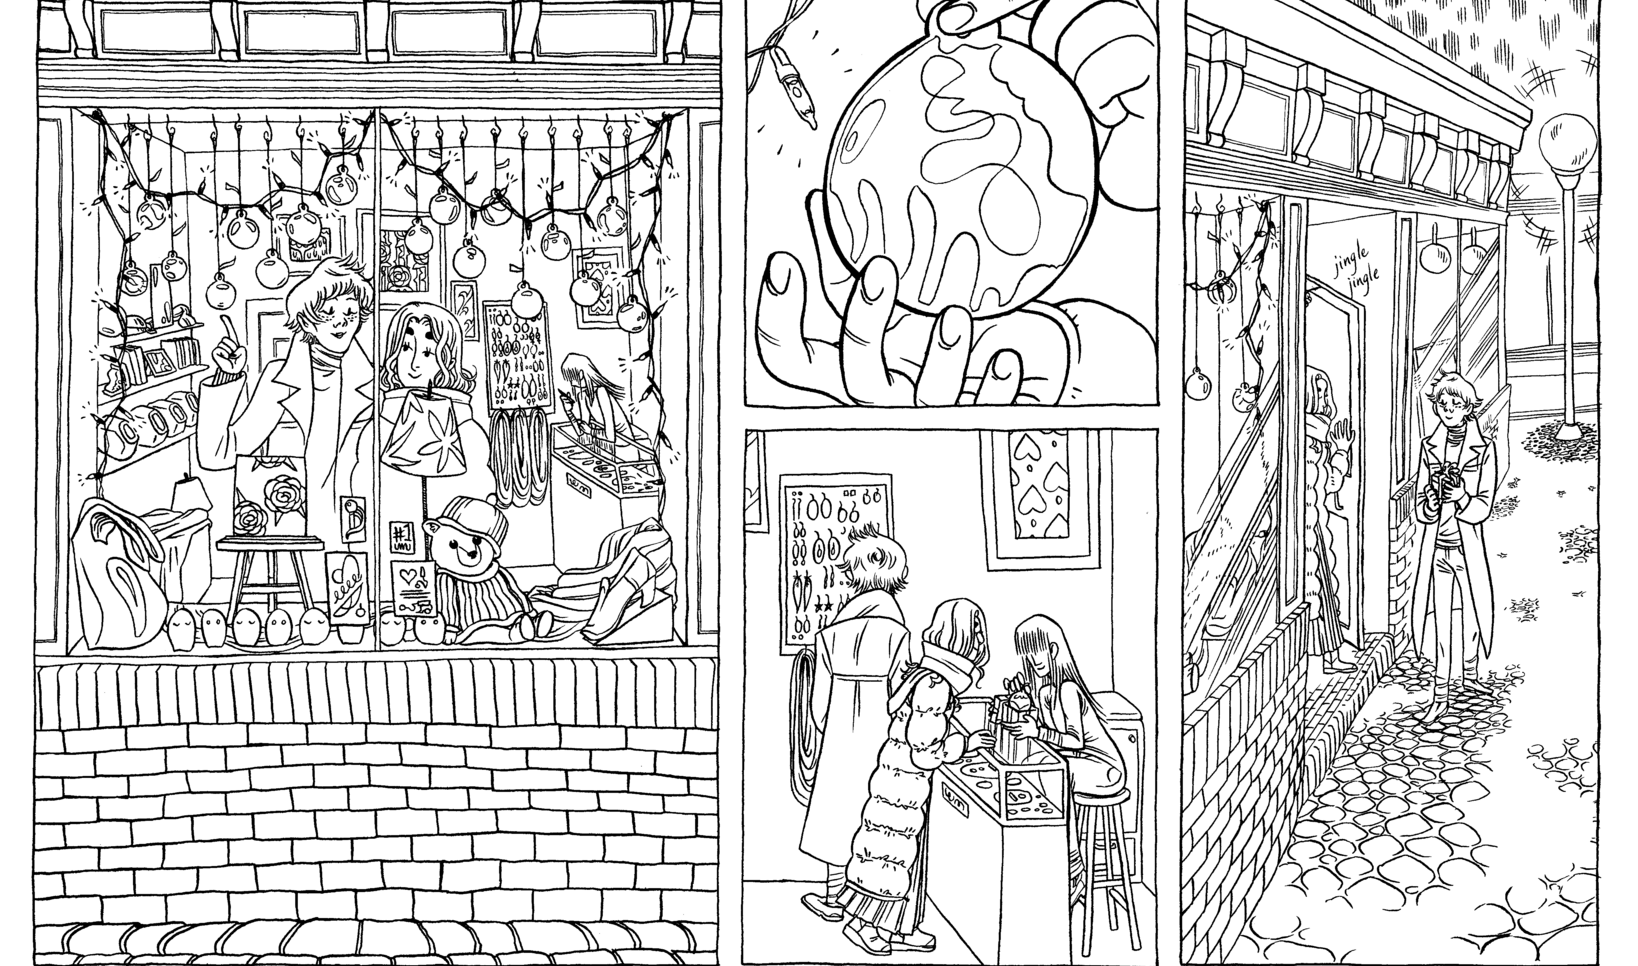 Two characters enjoying shop ornaments in this wintery comic. ; Edith Voges